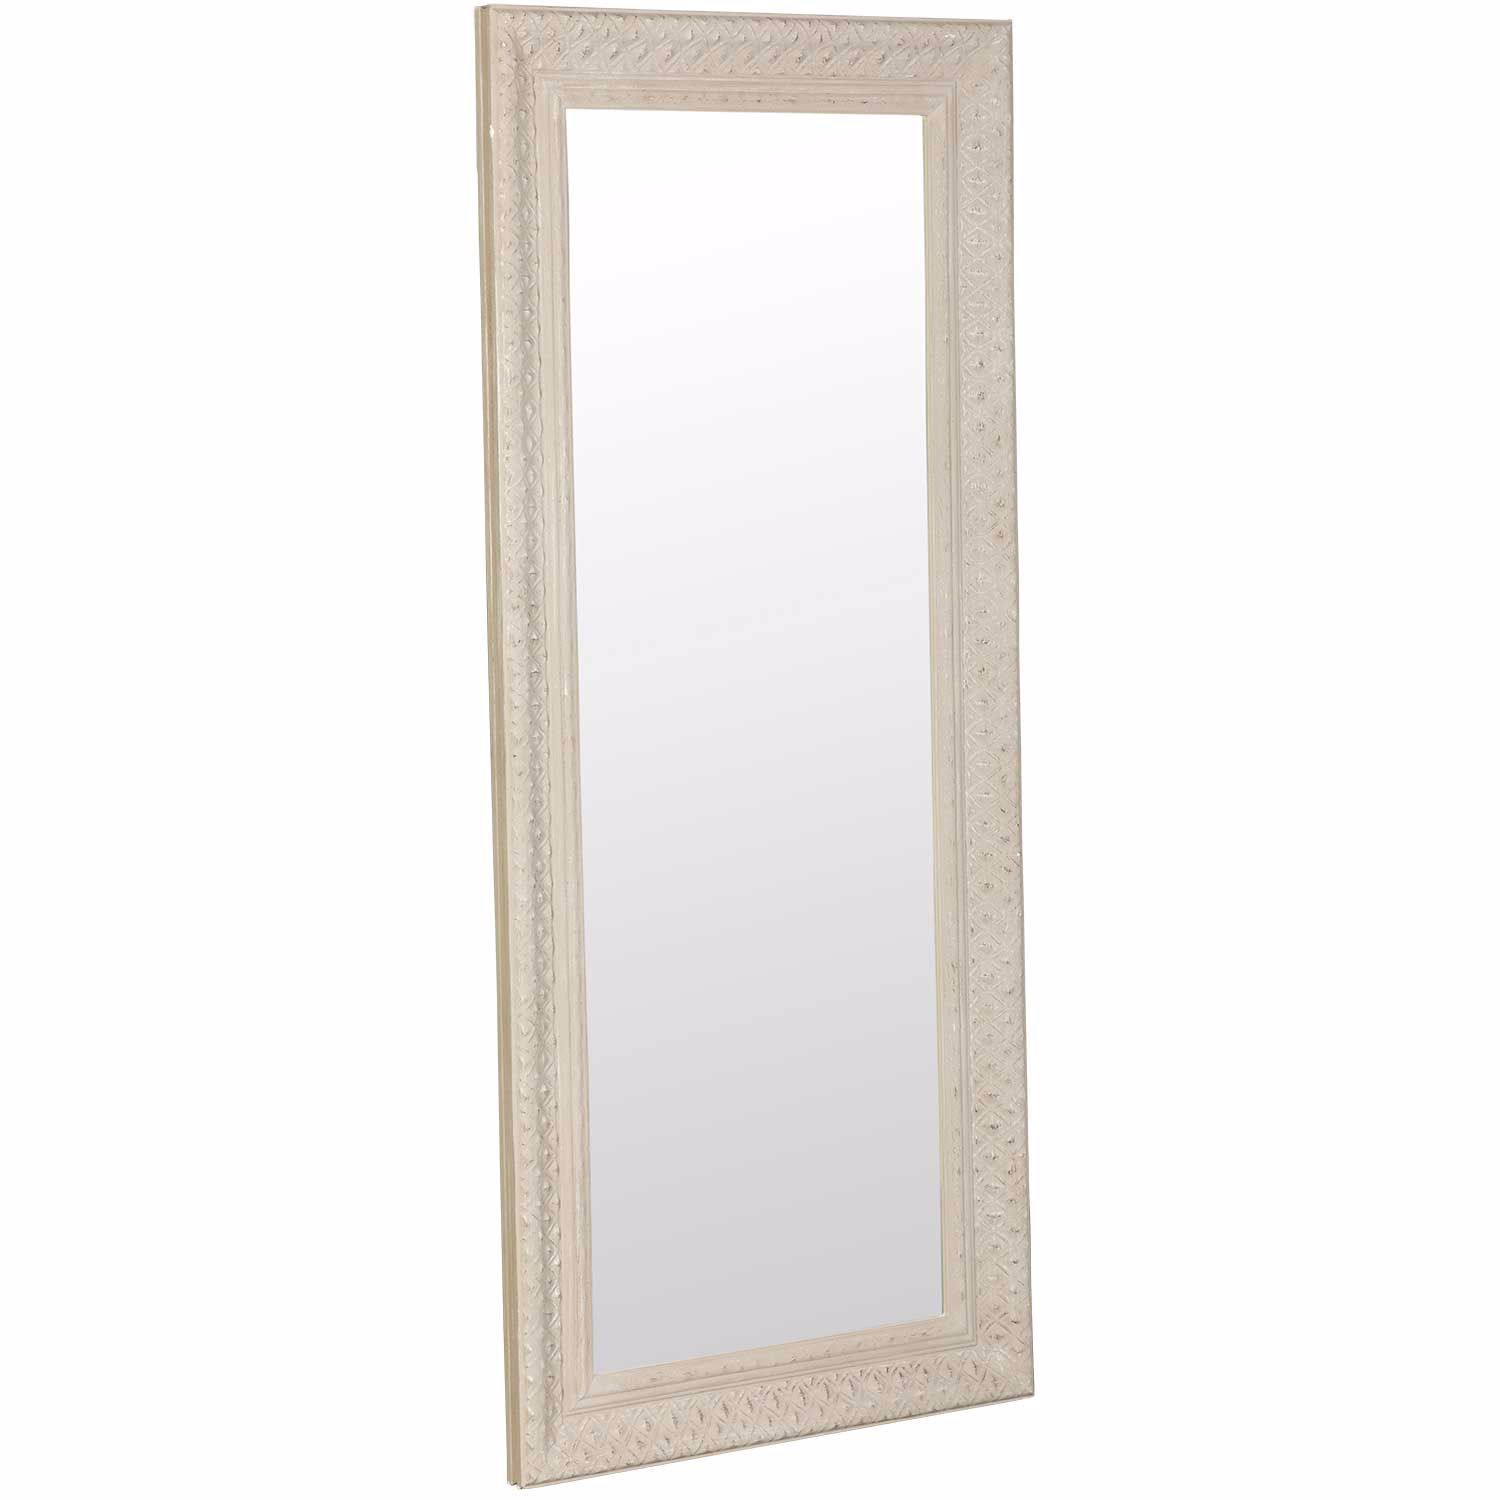 Picture of Light Wood Decorative Leaner Mirror